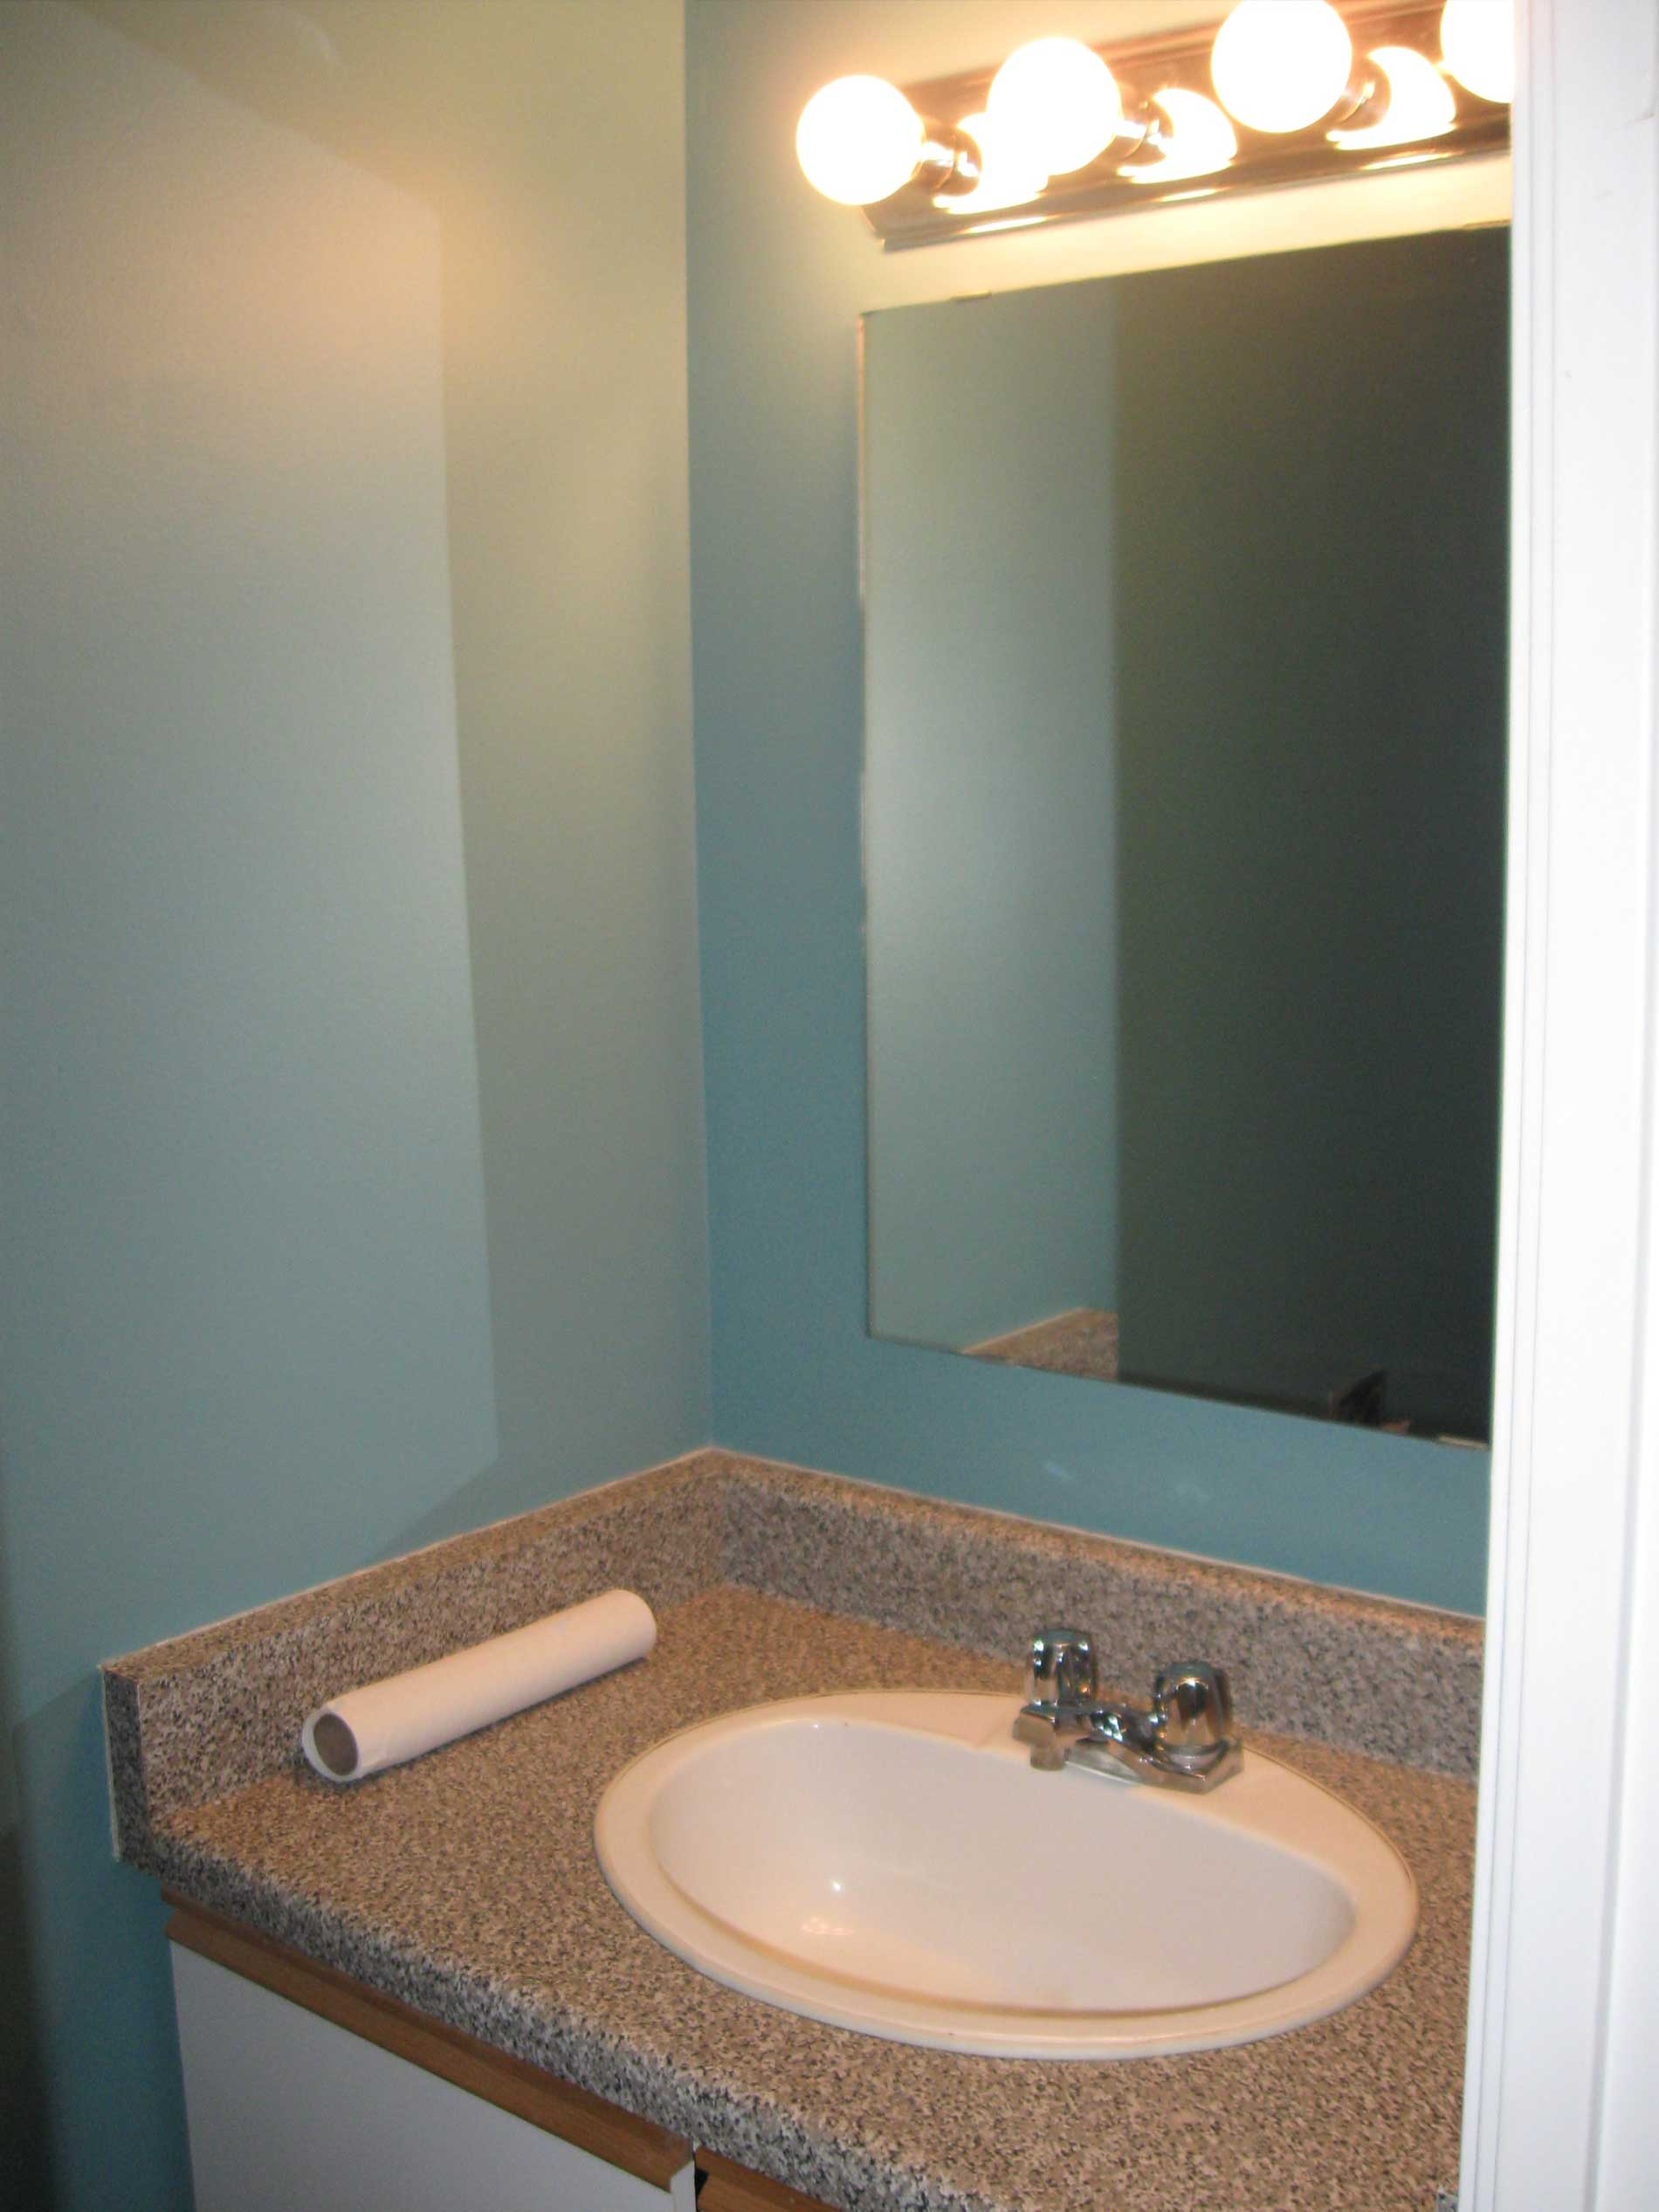 Old-PowderRoom-Townhouse-Sink